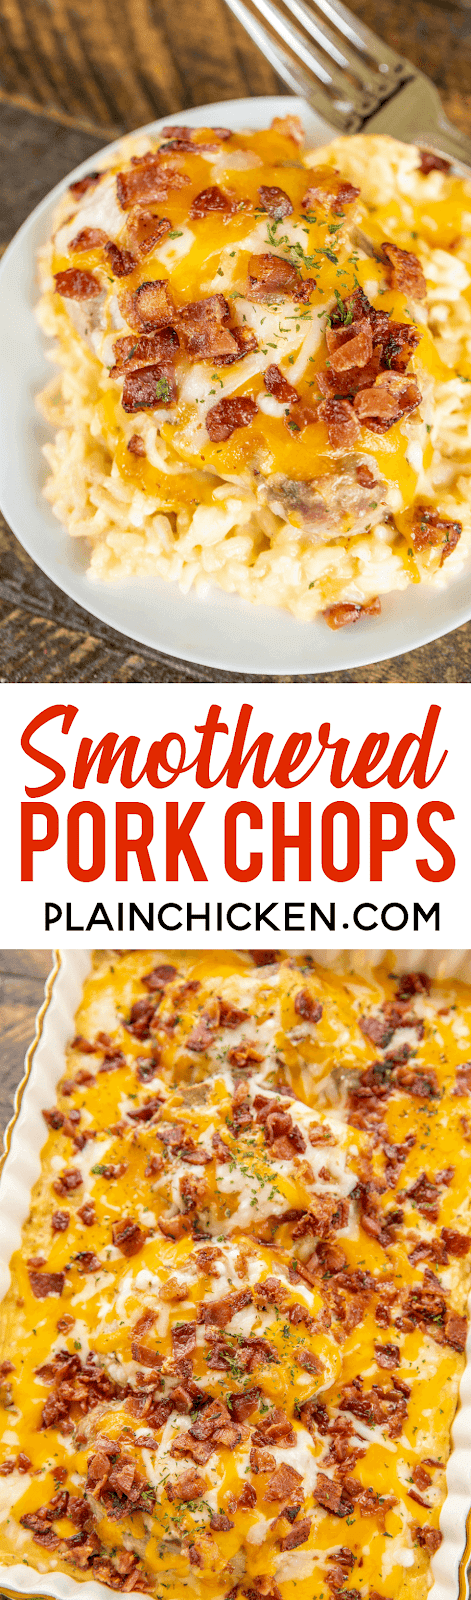 Smothered Pork Chops recipe - seriously delicious! Everyone cleaned their plate and asked for seconds! That never happens at our house!!! Pork Chops and rice baked in cream of chicken soup, milk, cheddar, mozzarella and bacon. Ready to bake in a snap and on the table in 30 minutes. We make this at least once a month!! SO GOOD!! #porkchops #casserole #dinner